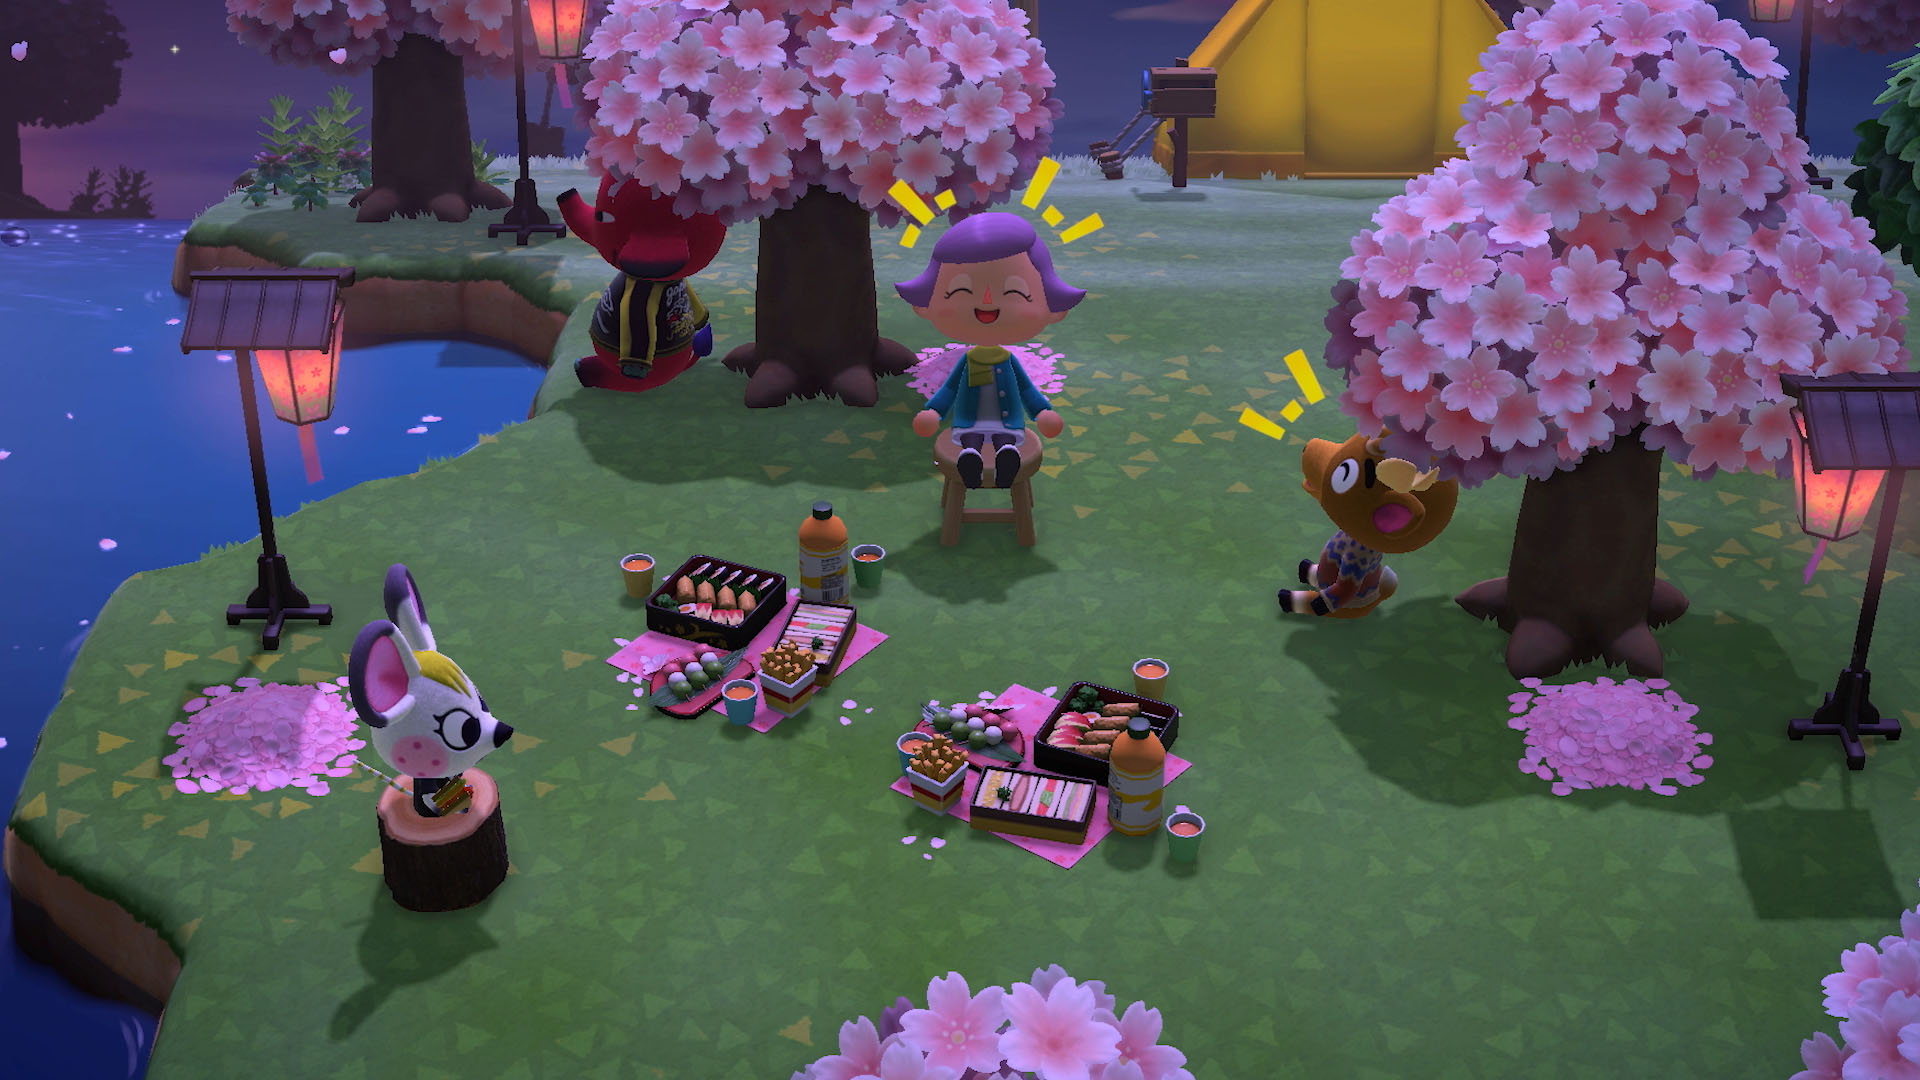 Chilling with villagers - animal crossing: new horizons